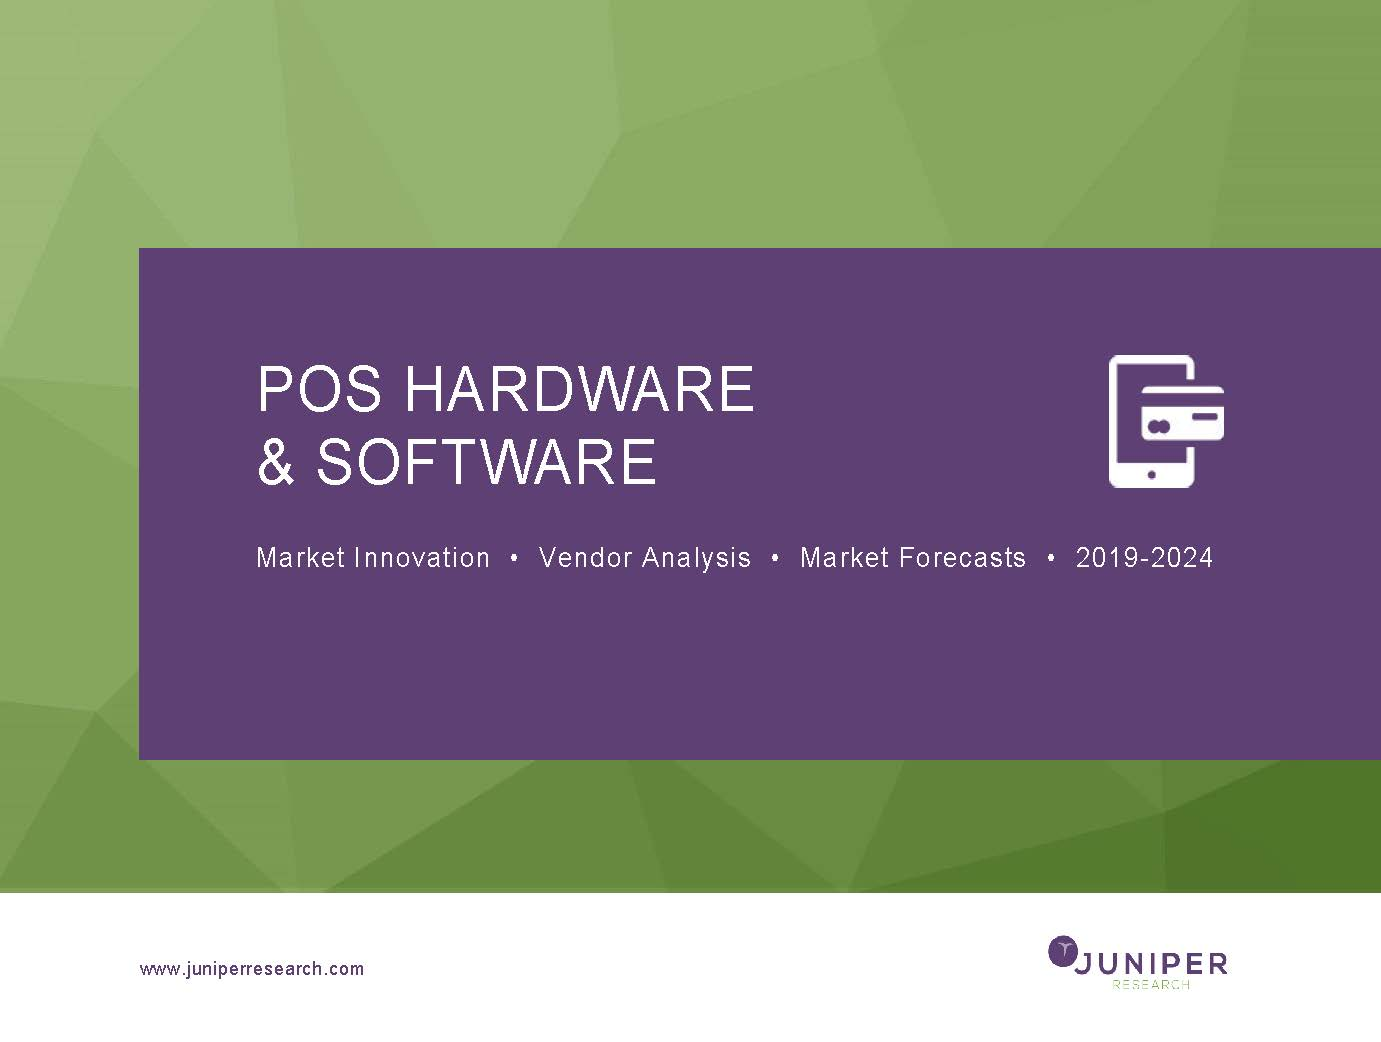 POS Hardware & Software